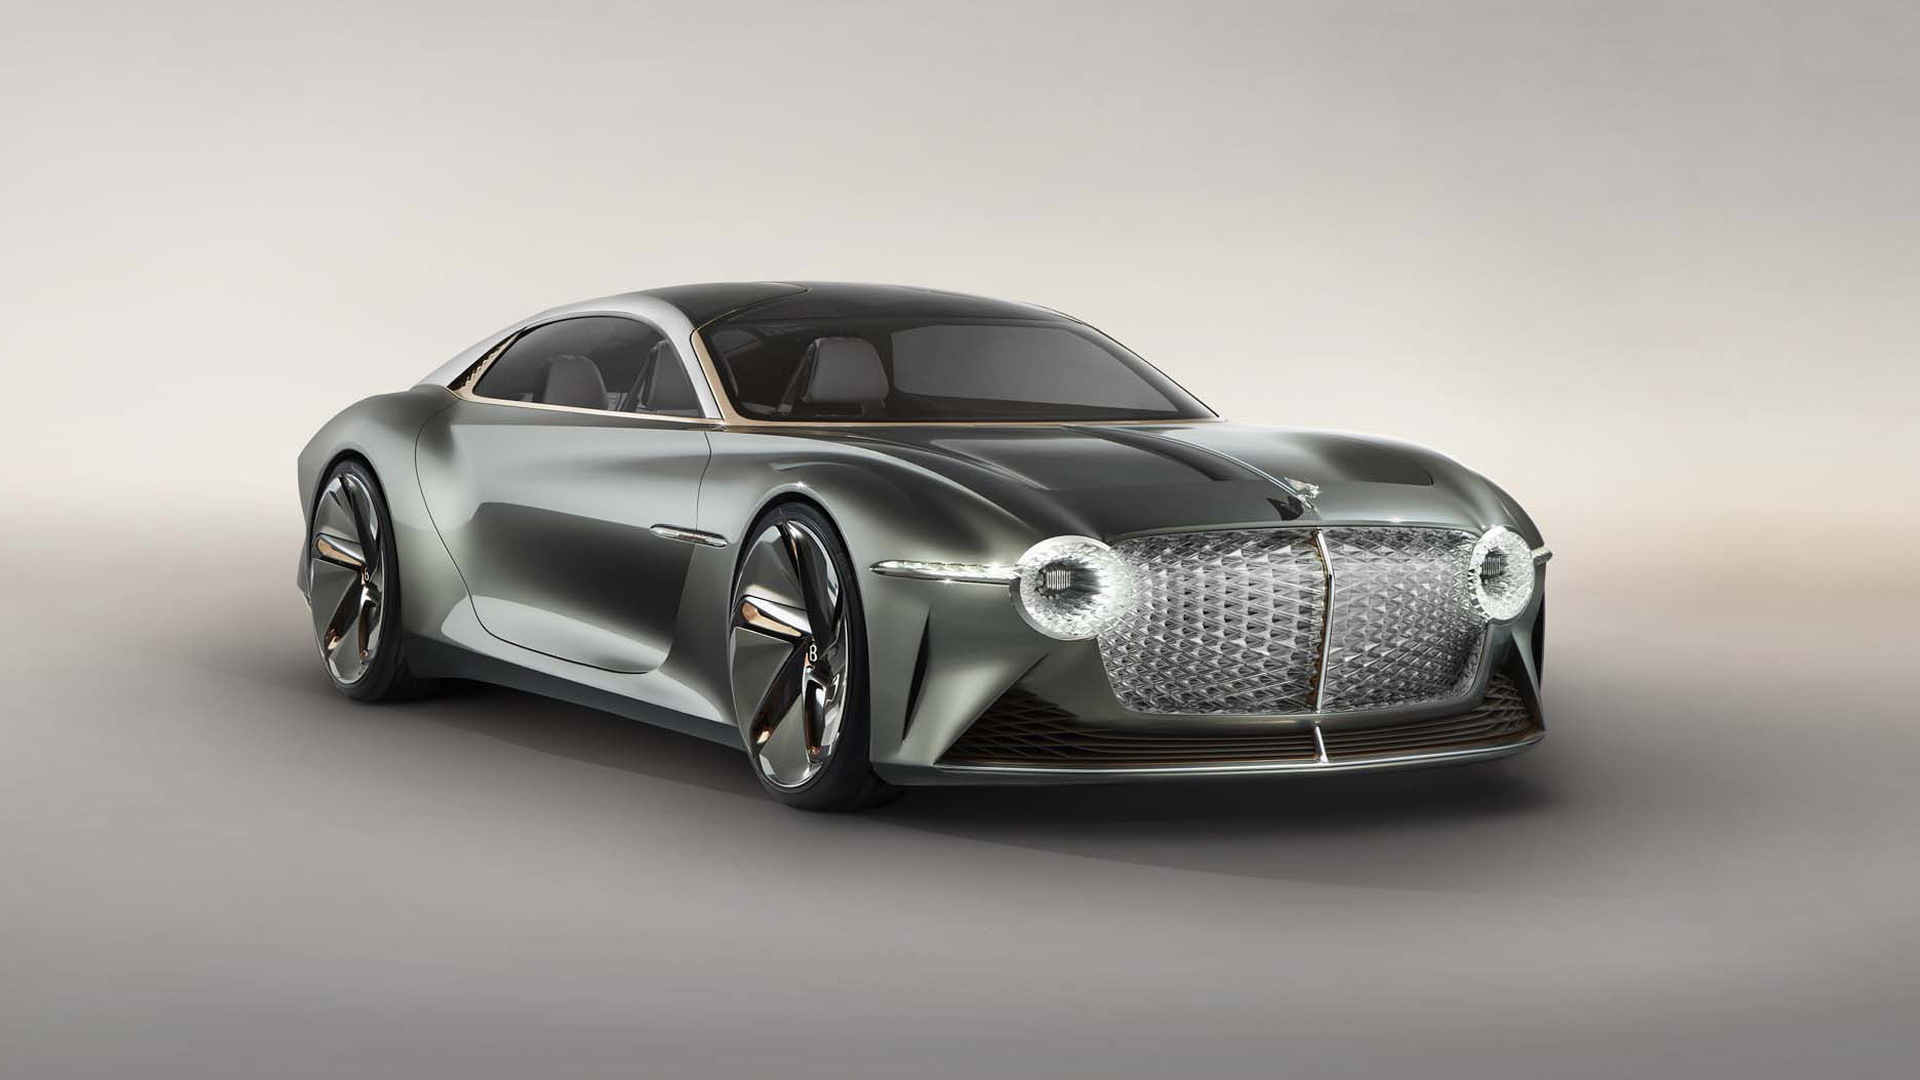 Bentley celebrates 100th birthday with this massive EXP 100 GT Concept